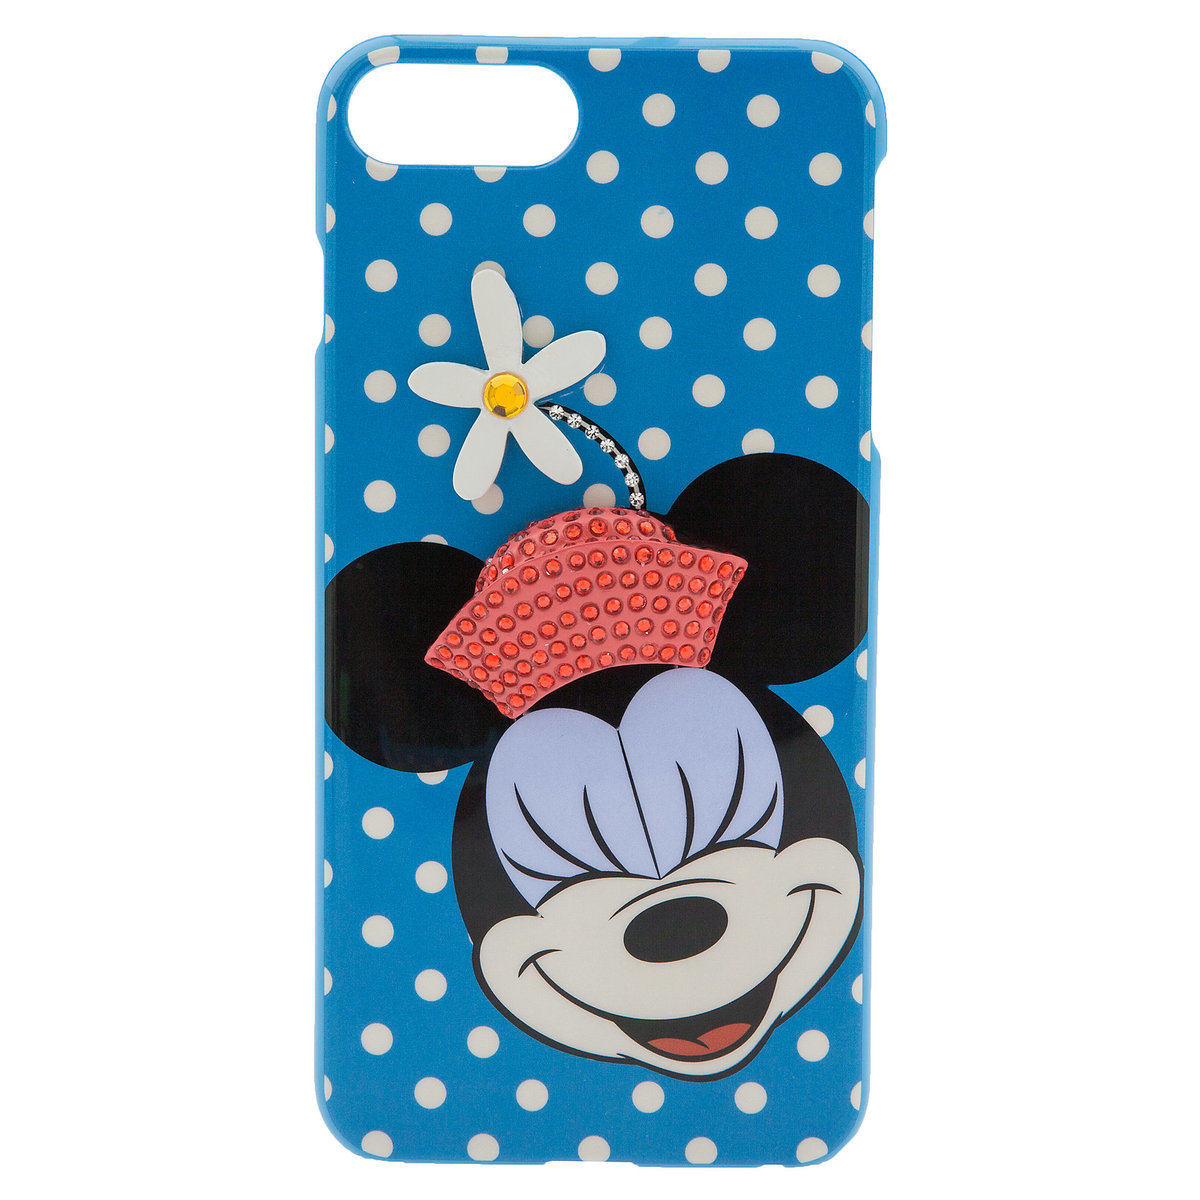 disney 7 plus case iphone